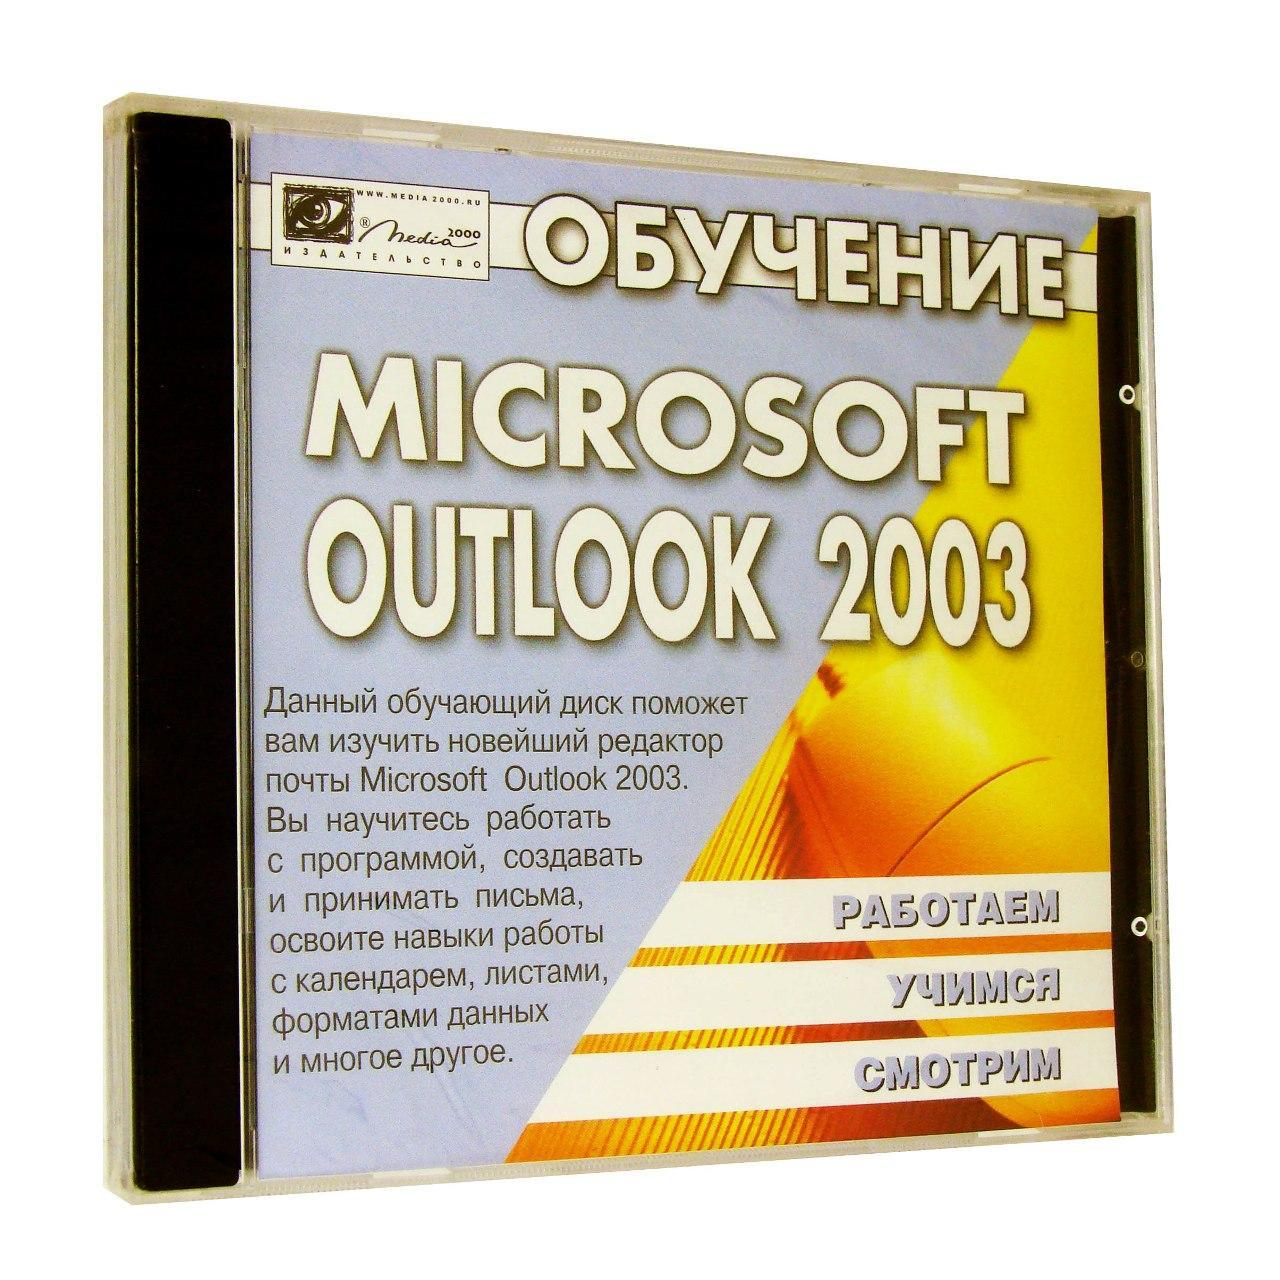 Обучение Microsoft Outlook 2003 (PC)